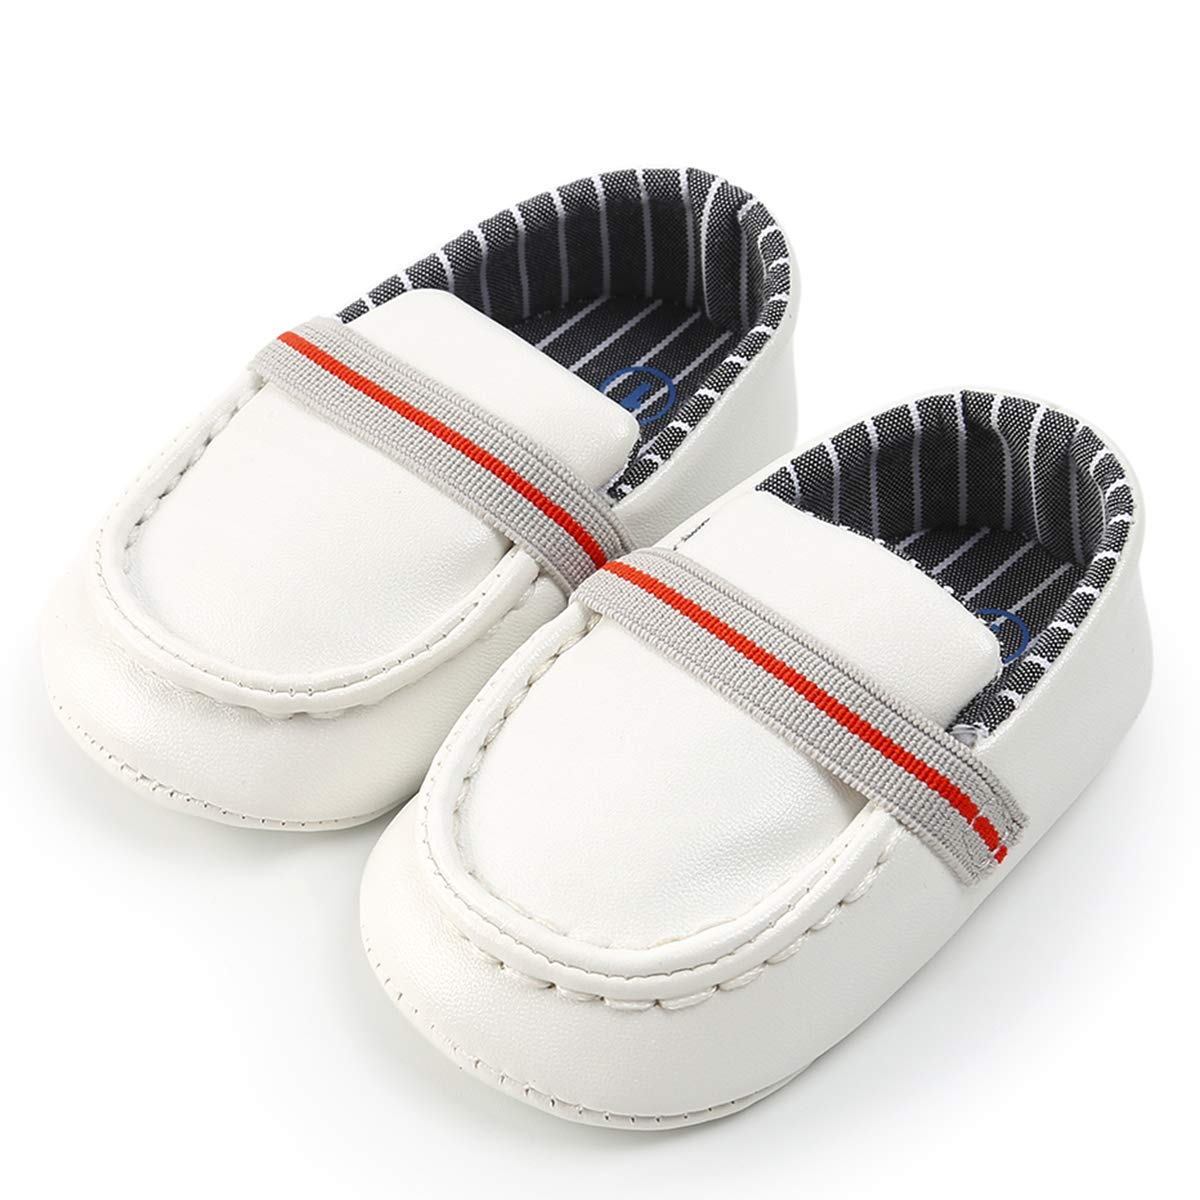 LIVEBOX Newborn Baby Boys Shoes Loafers Dress Flat Shoes Sneakers Crib Shoes